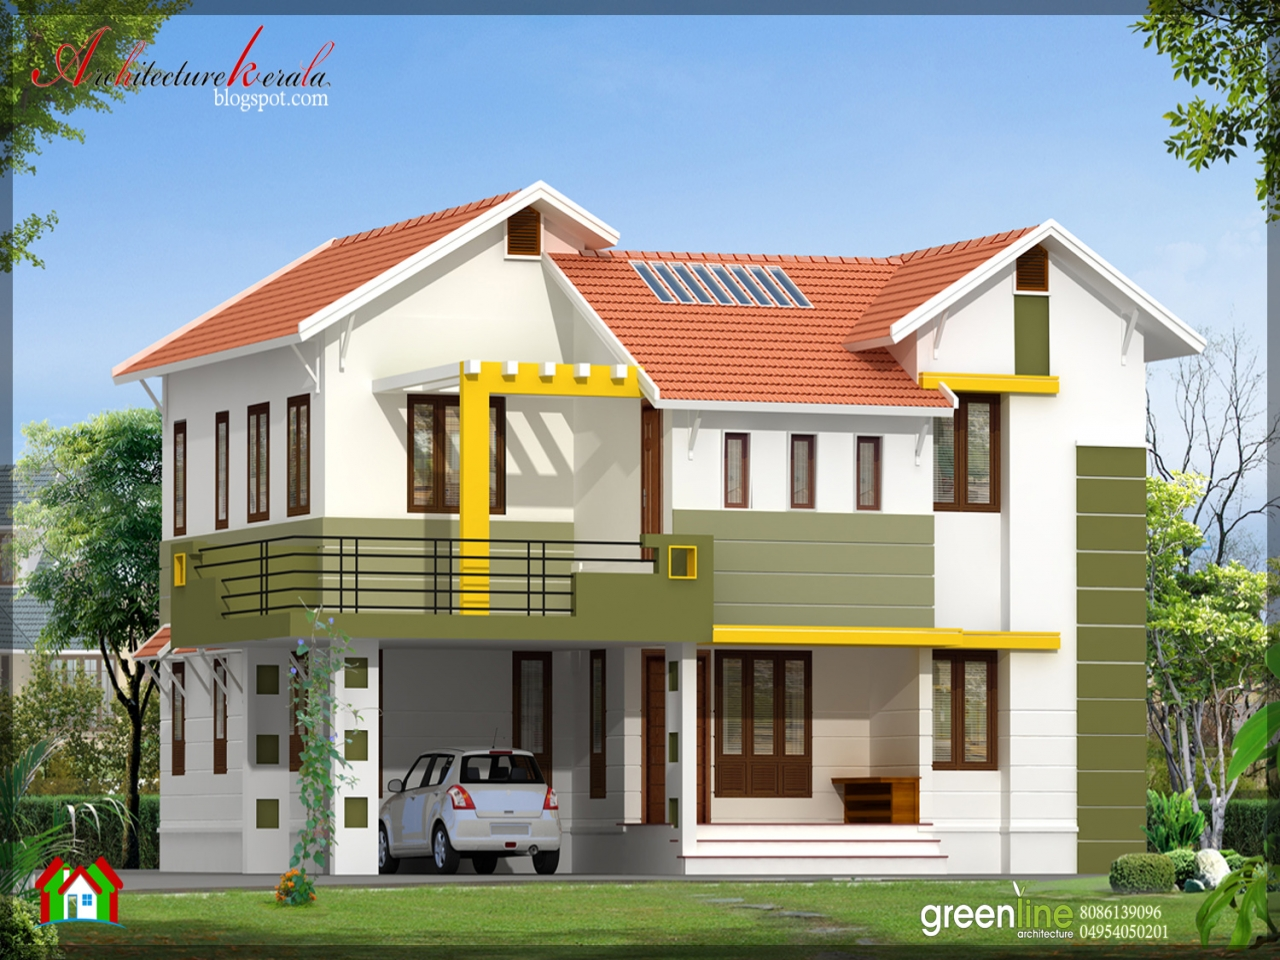 Simple modern house designs simple house design in india for House designs indian style